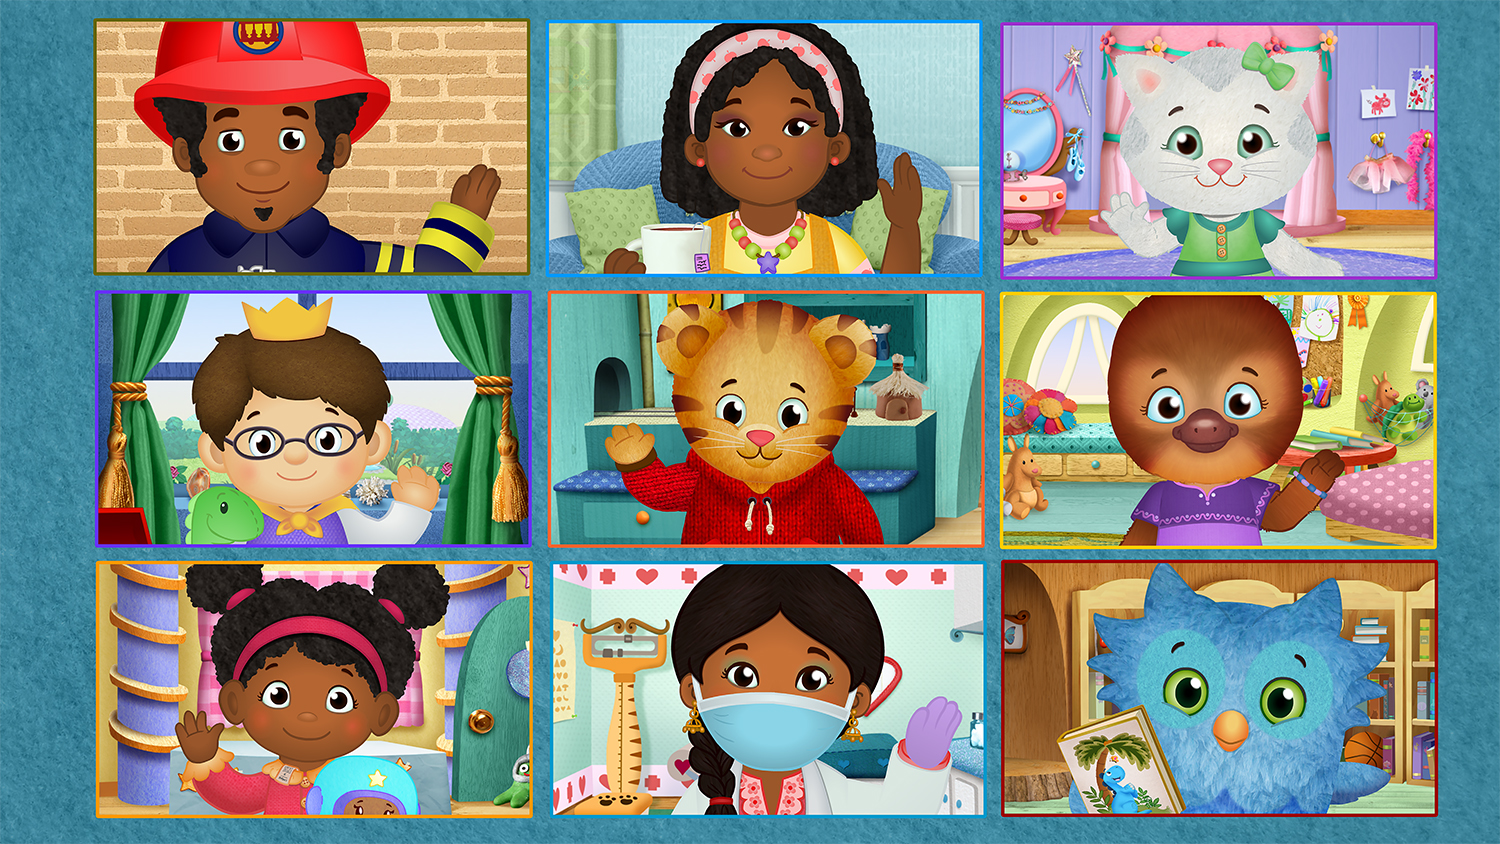 Changes, changes: From Tyra to Daniel Tiger